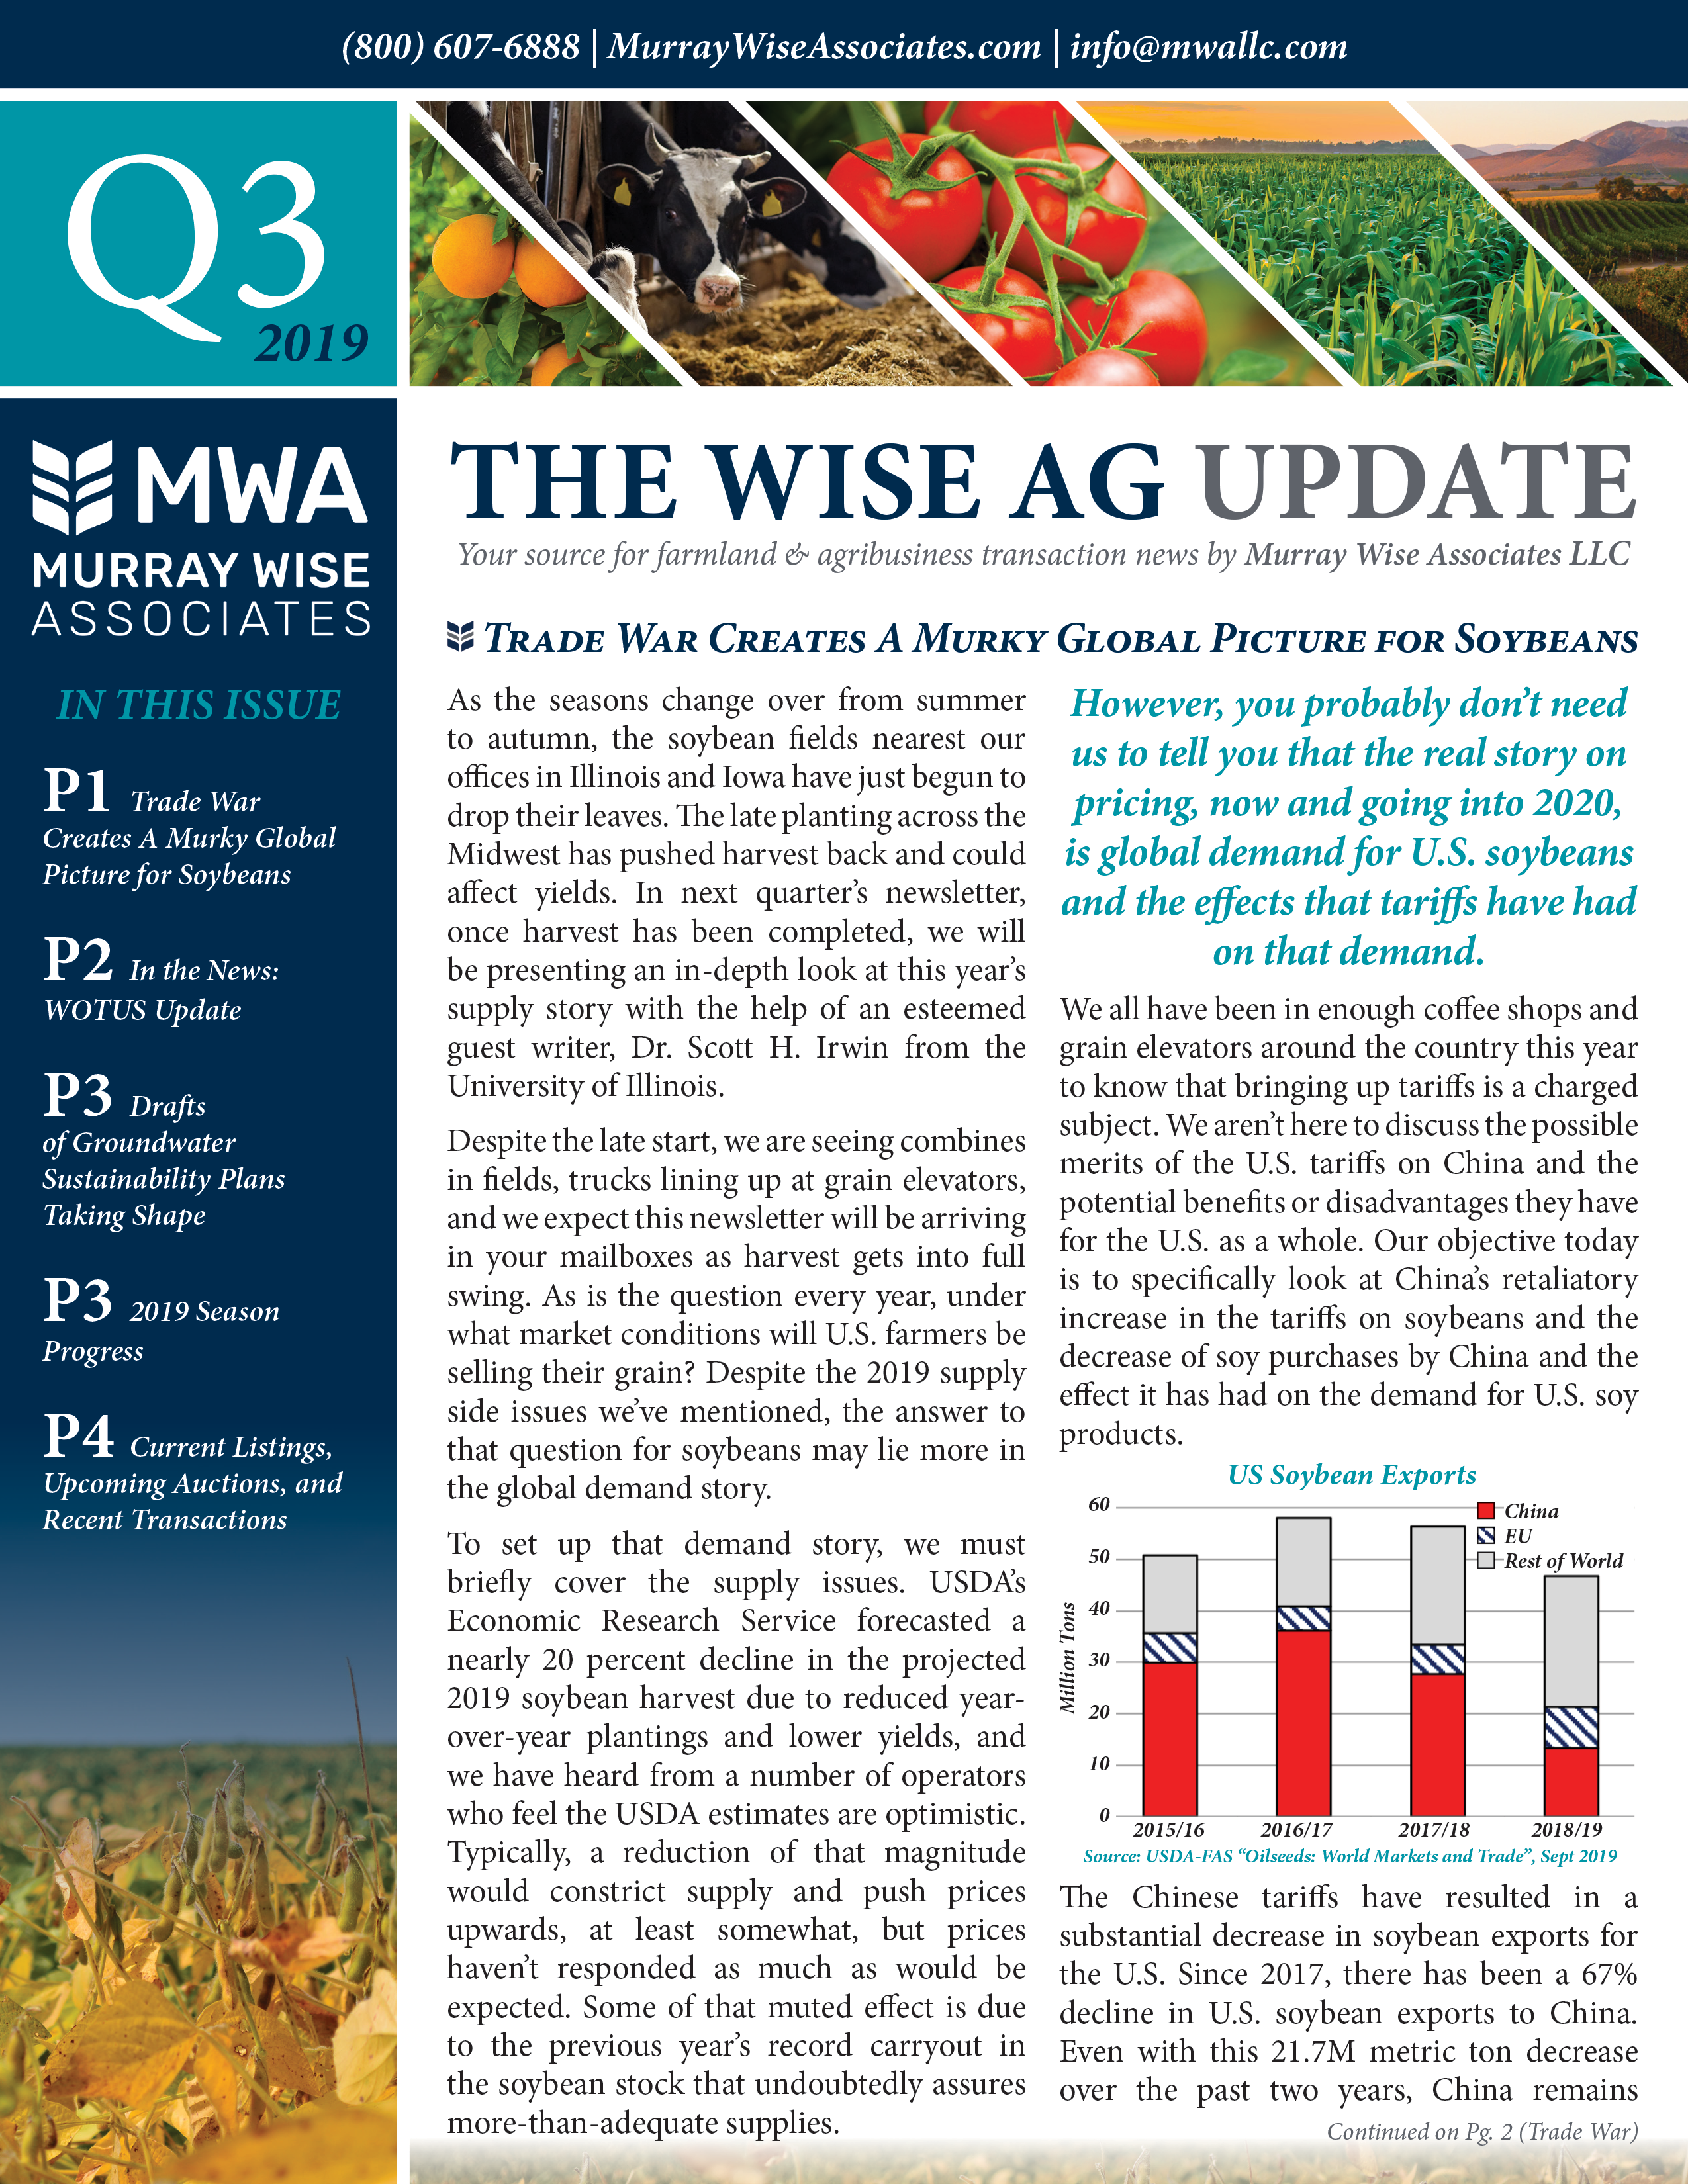 MWA Newsletter Third Quarter 2019